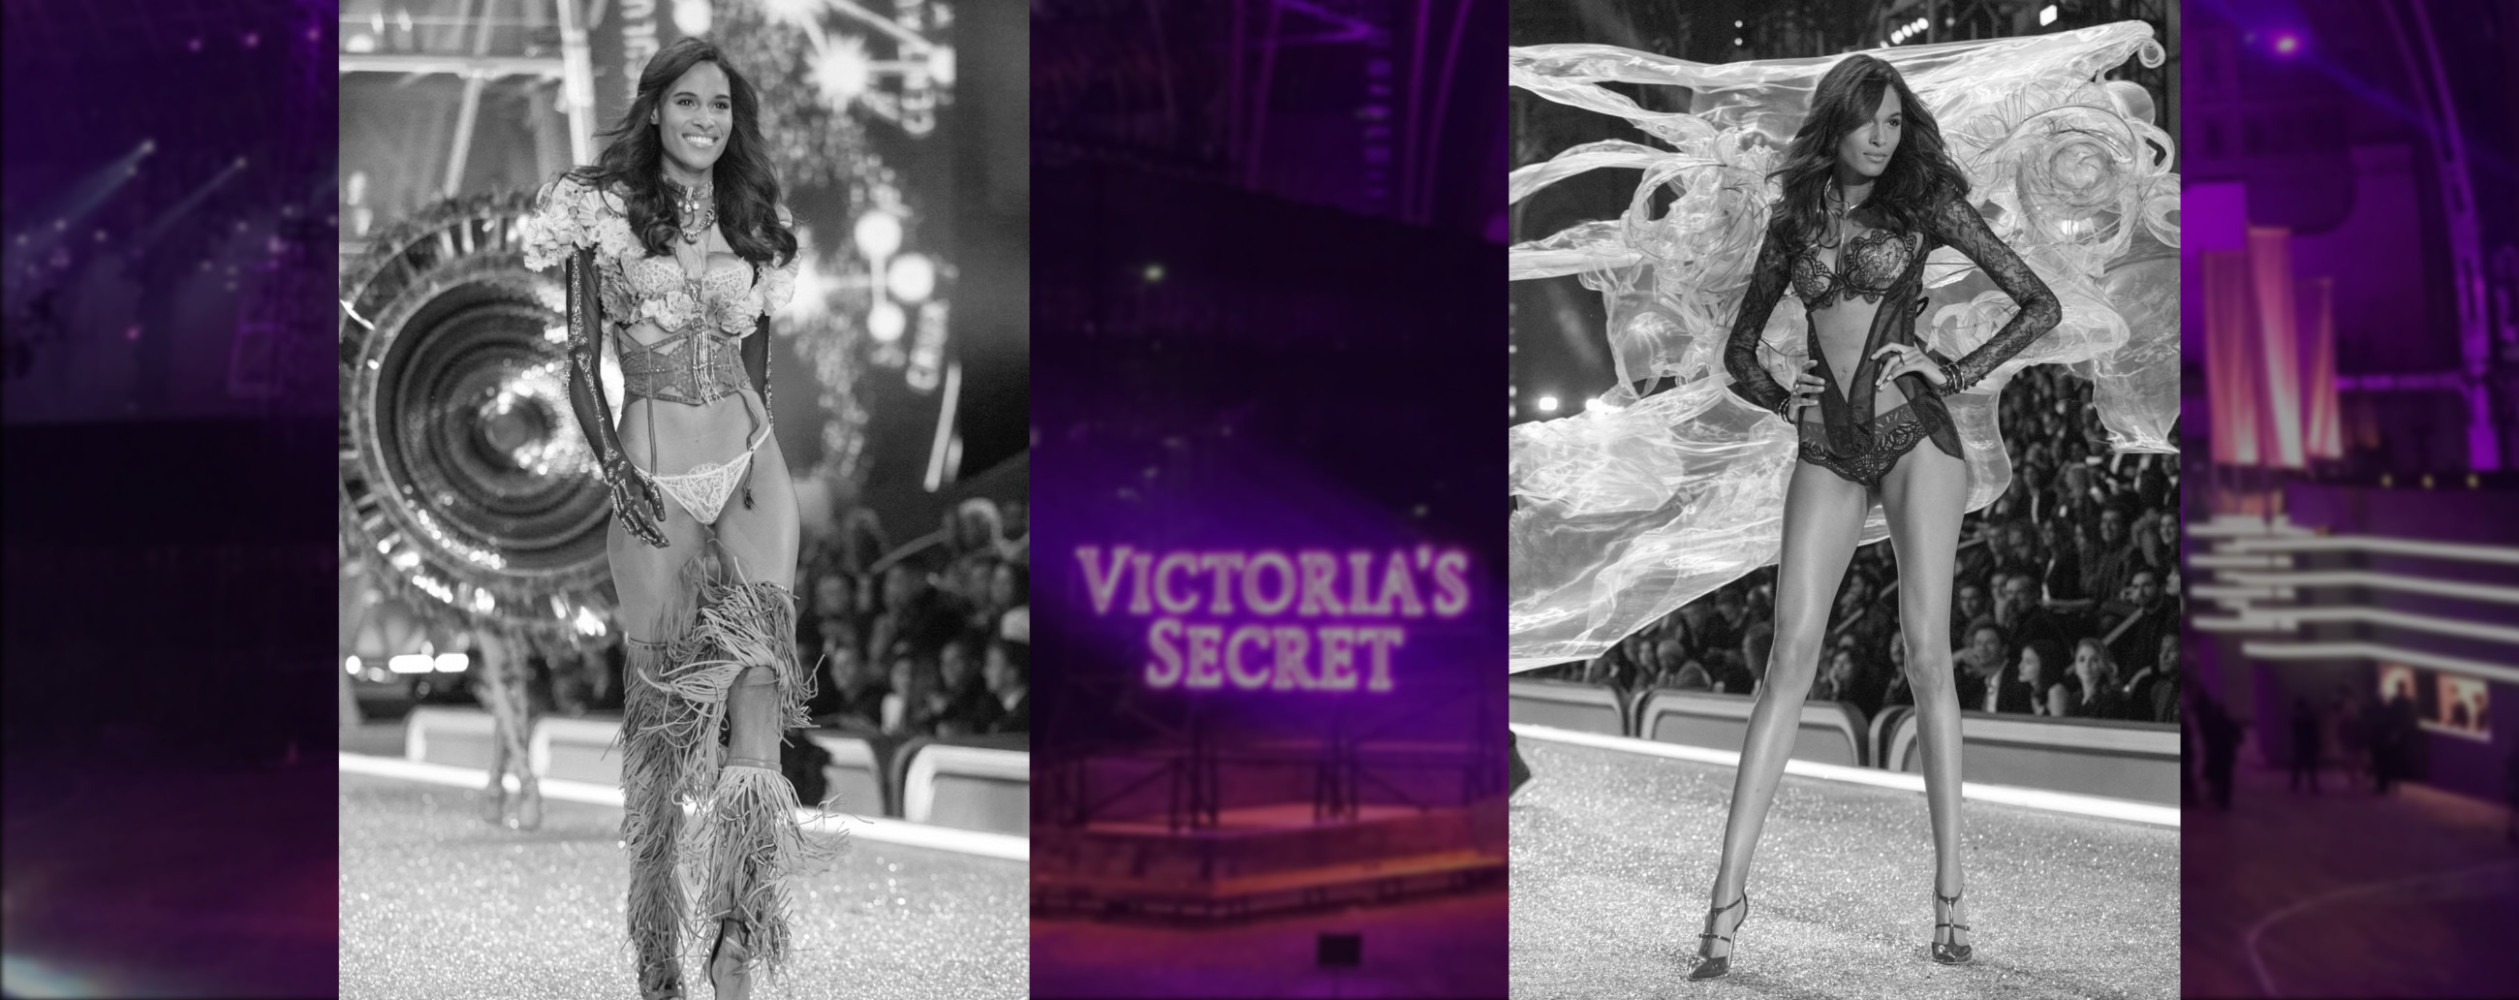 ⚡️ CINDY BRUNA SET FIRE TO THE VICTORIA'S SECRET SHOW ⚡️